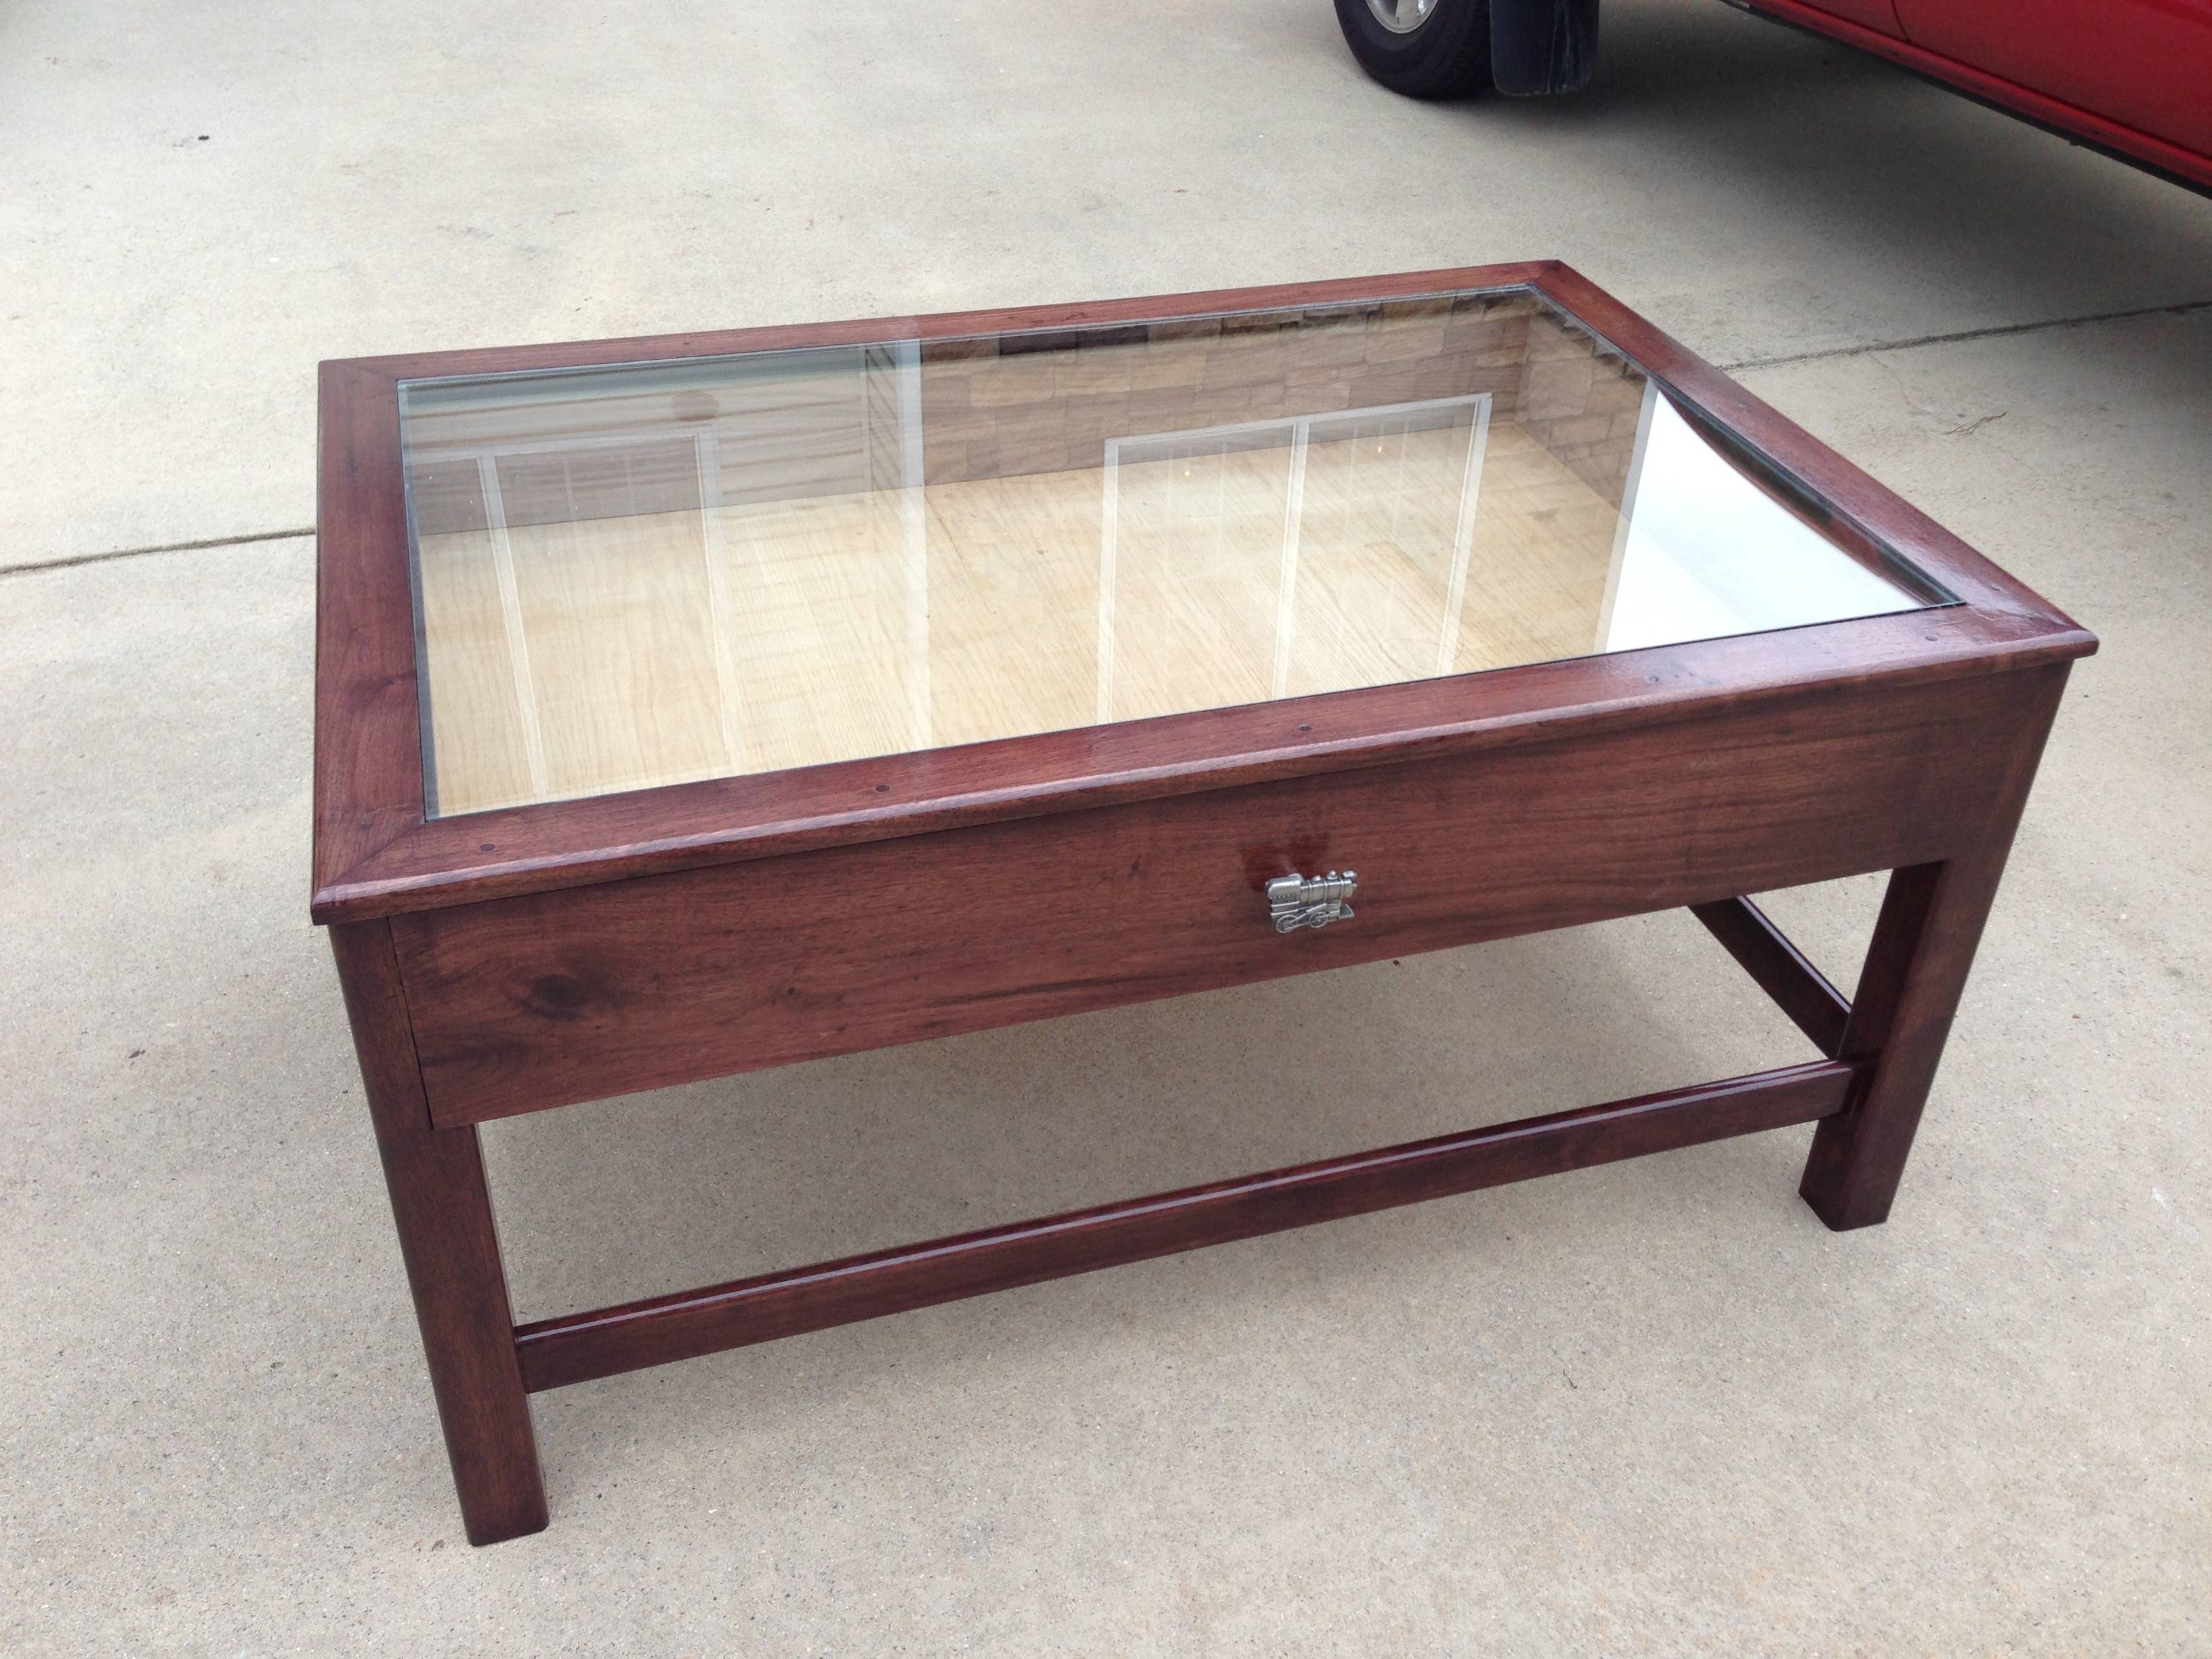 Coffee Table With Glass Top Storage Interior Home Design - Jericho throughout Square Storage Coffee Tables (Image 4 of 30)